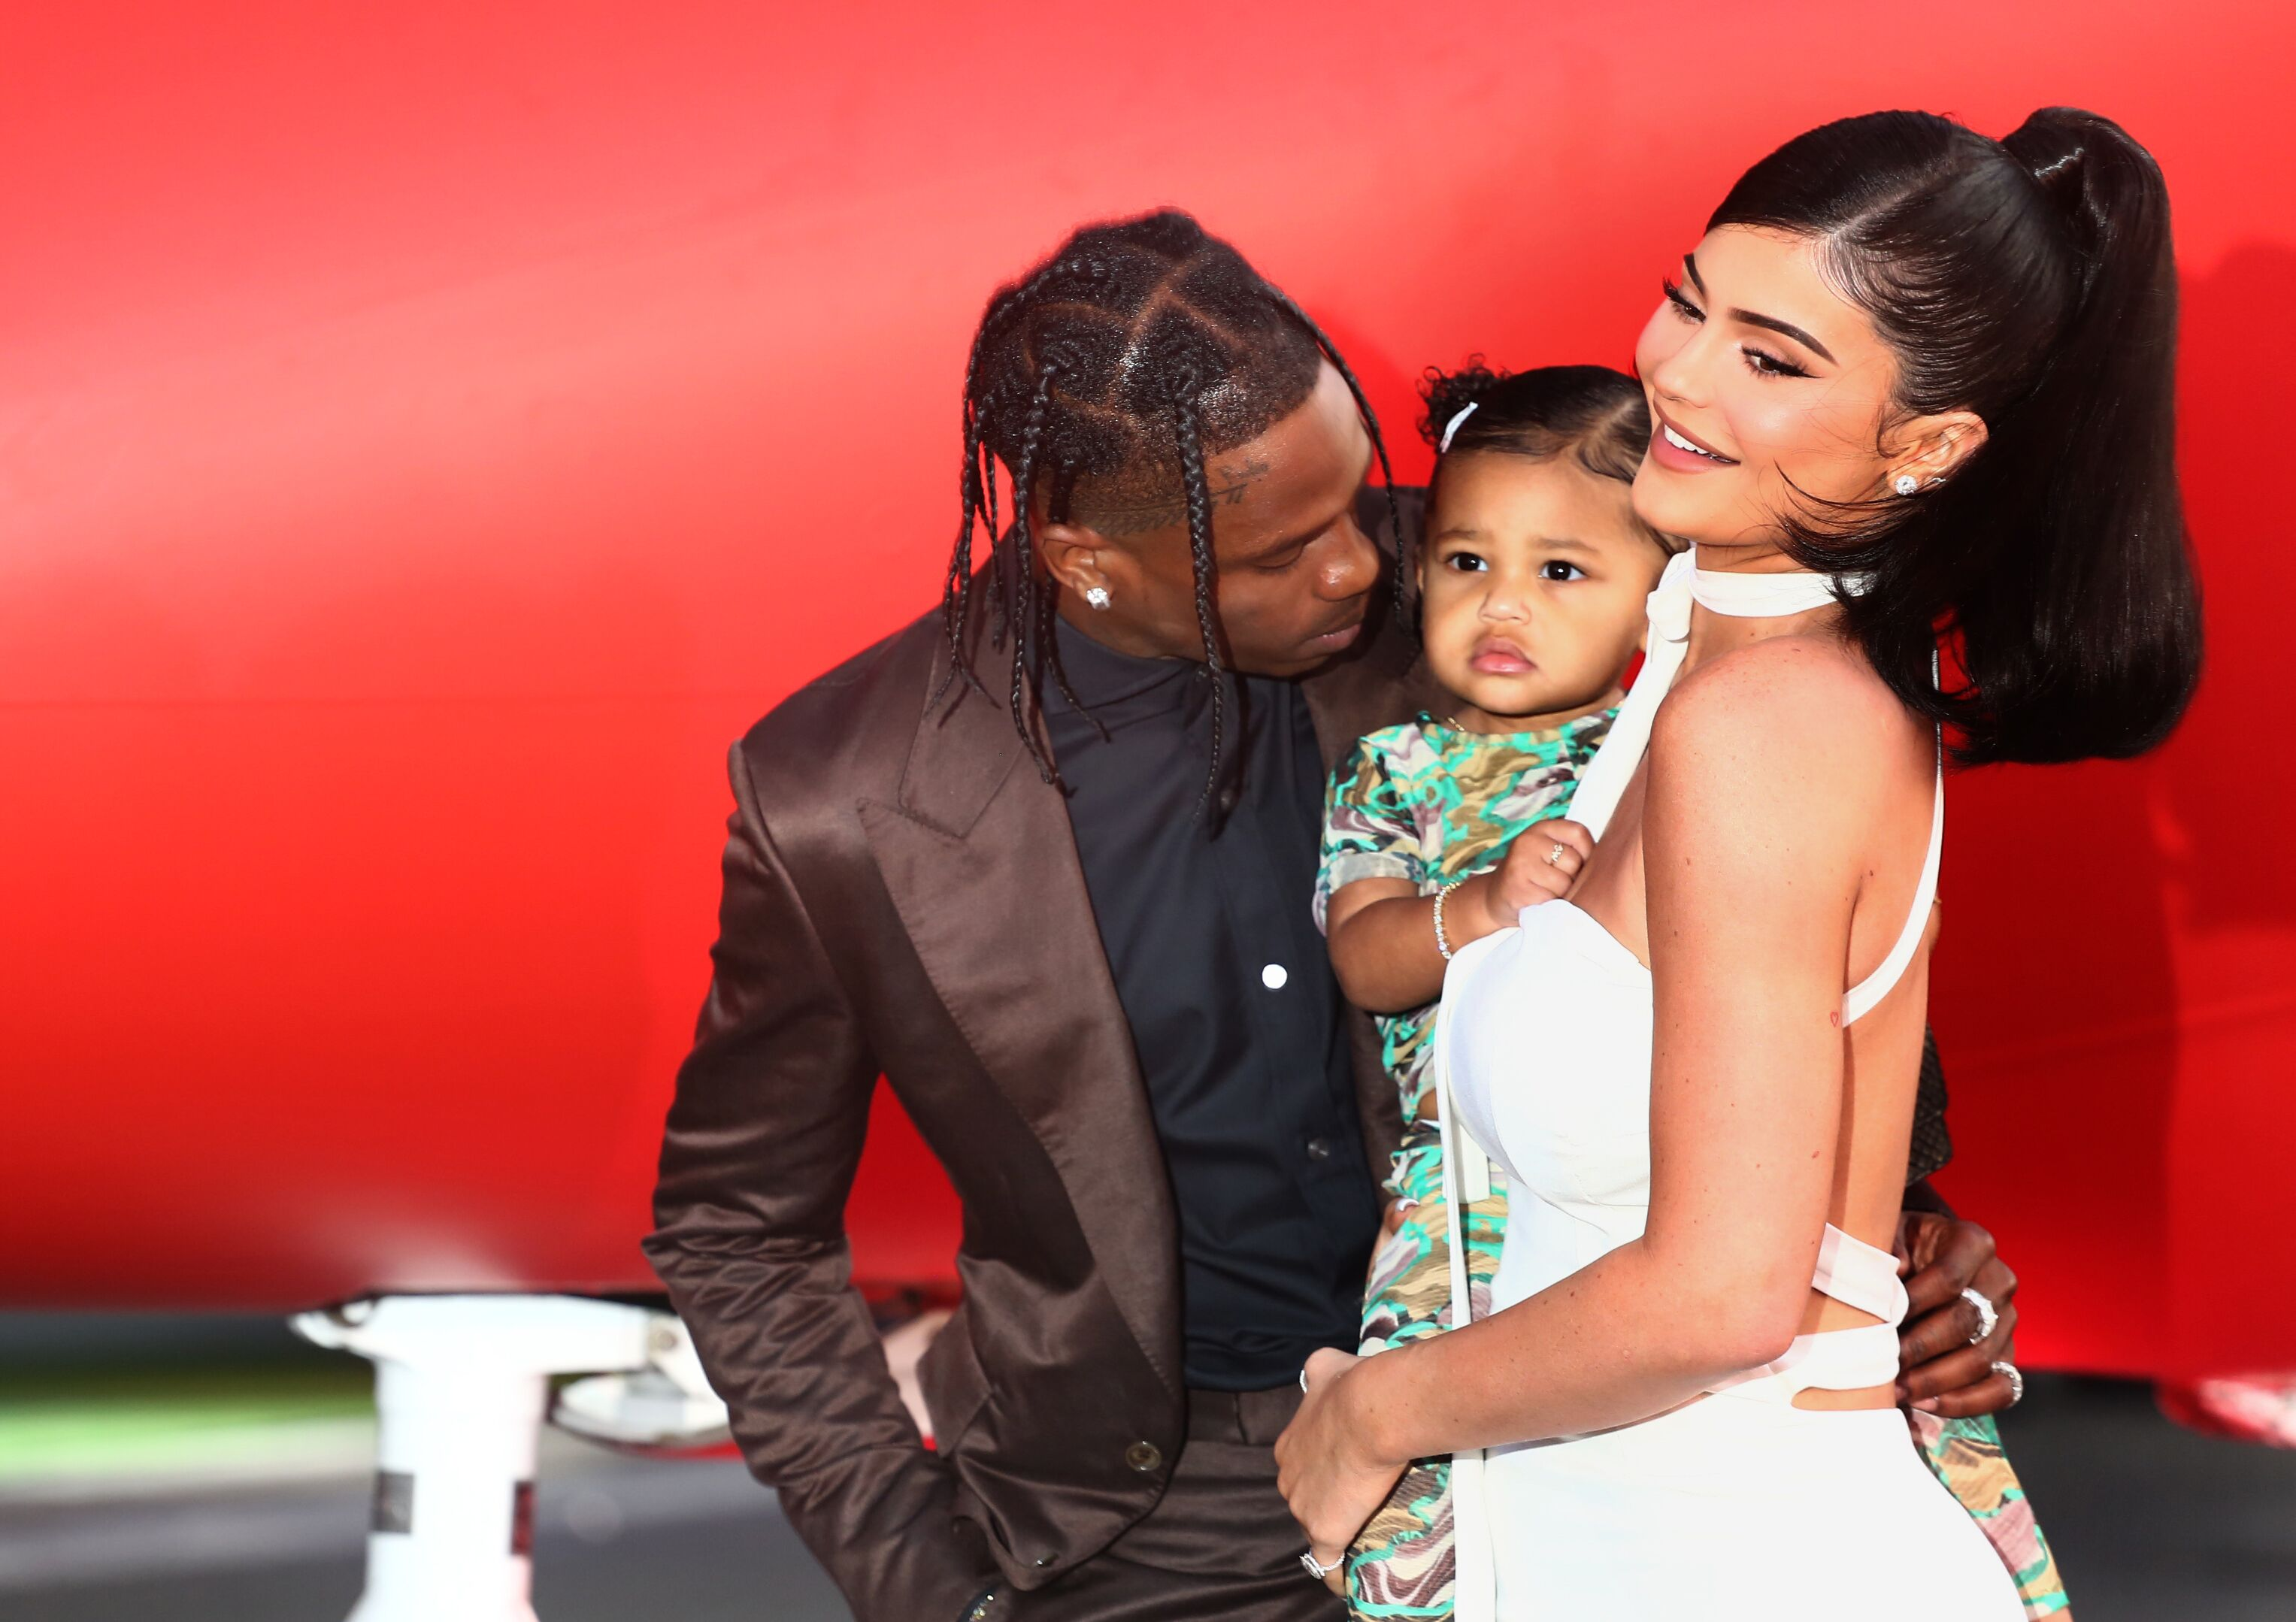 Travis Scott and Kylie Jenner with daughter Stormi Webster/ Source: Getty Images